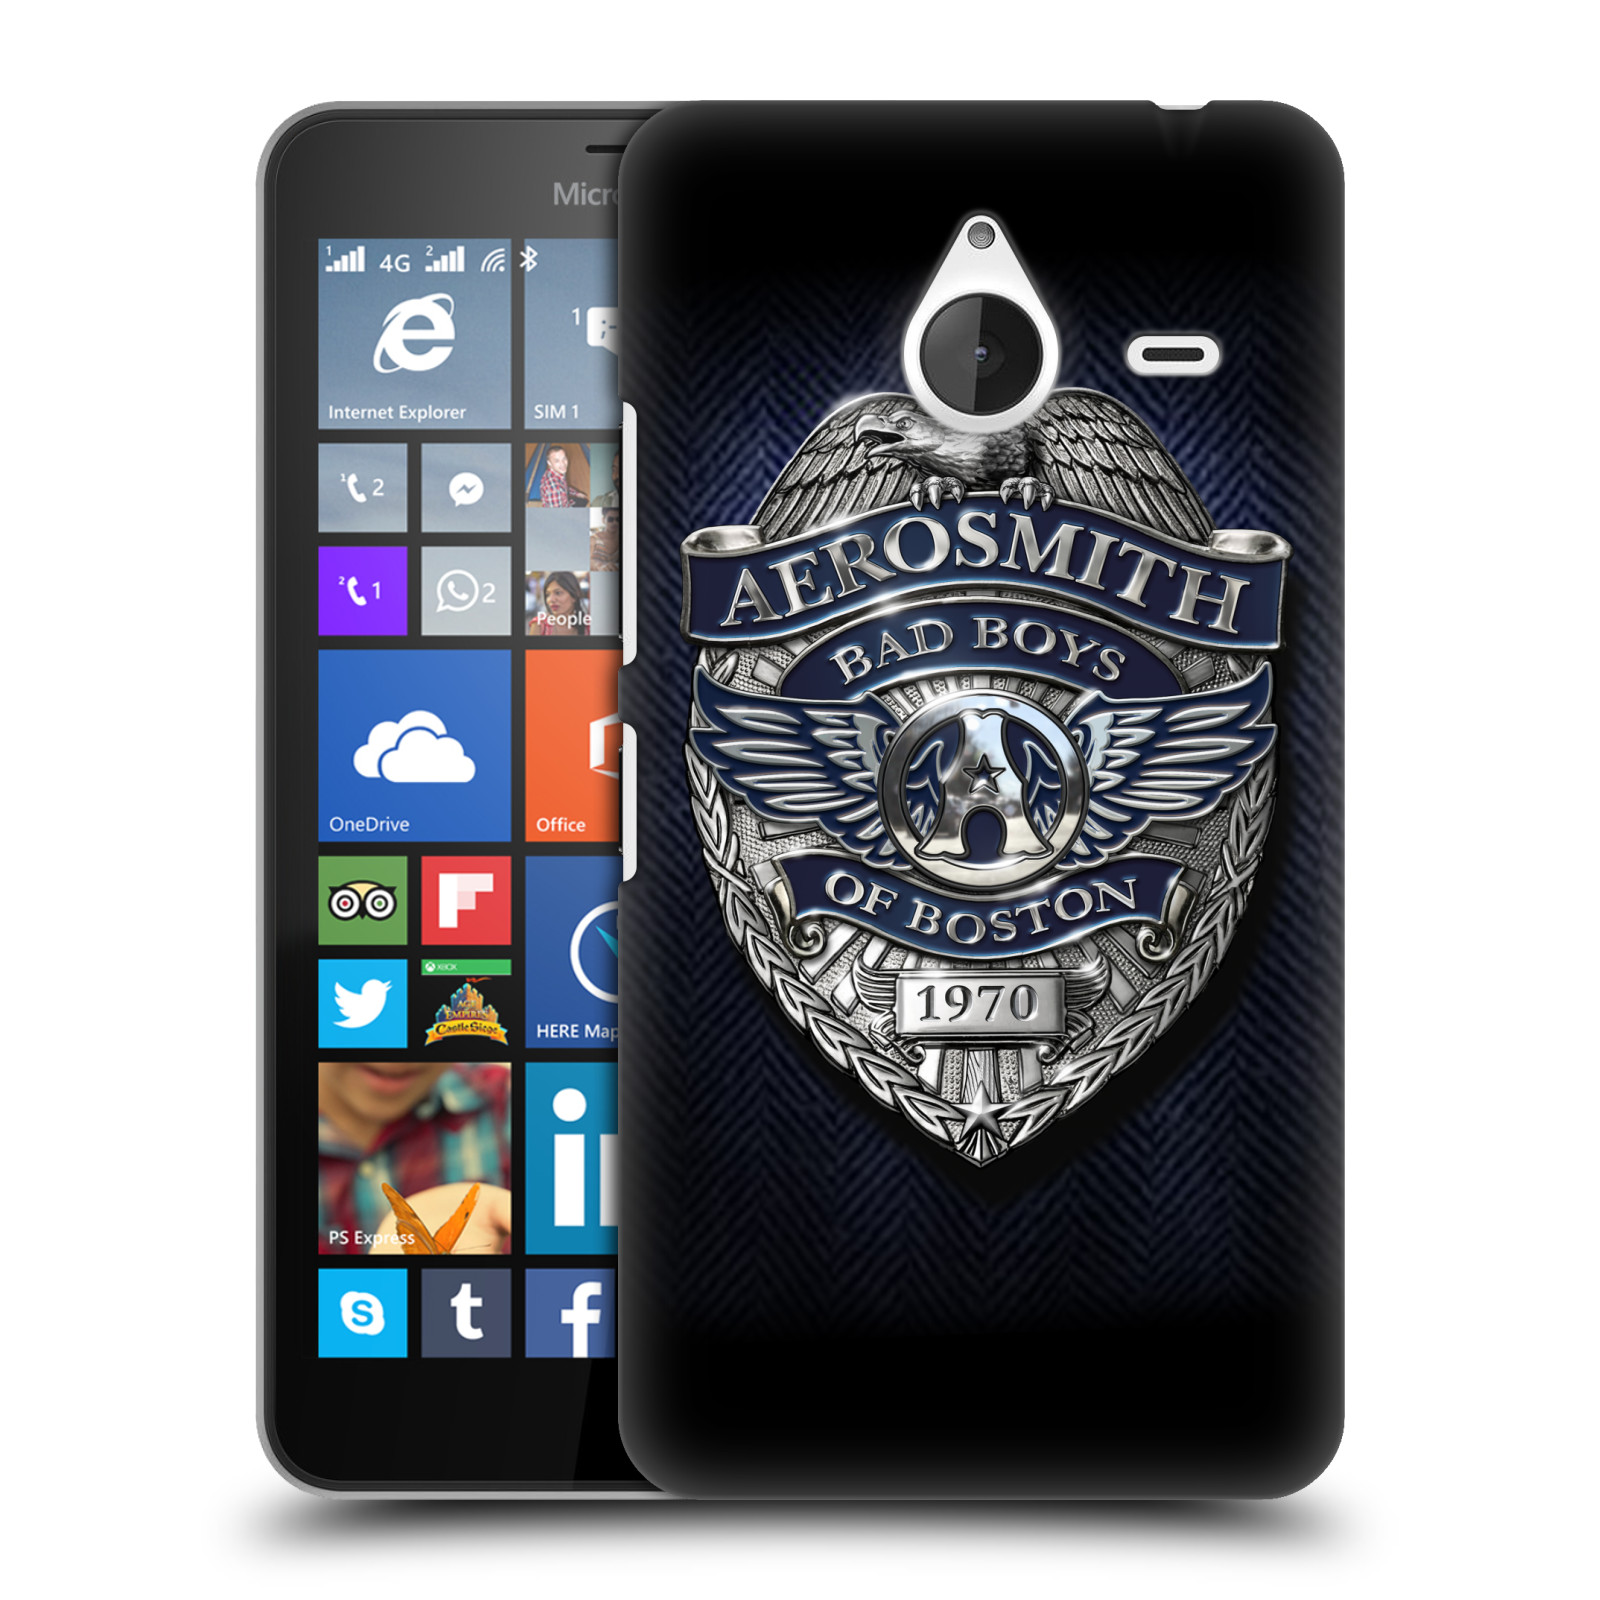 Plastové pouzdro na mobil Microsoft Lumia 640 XL HEAD CASE - Aerosmith - Bad Boys of Boston